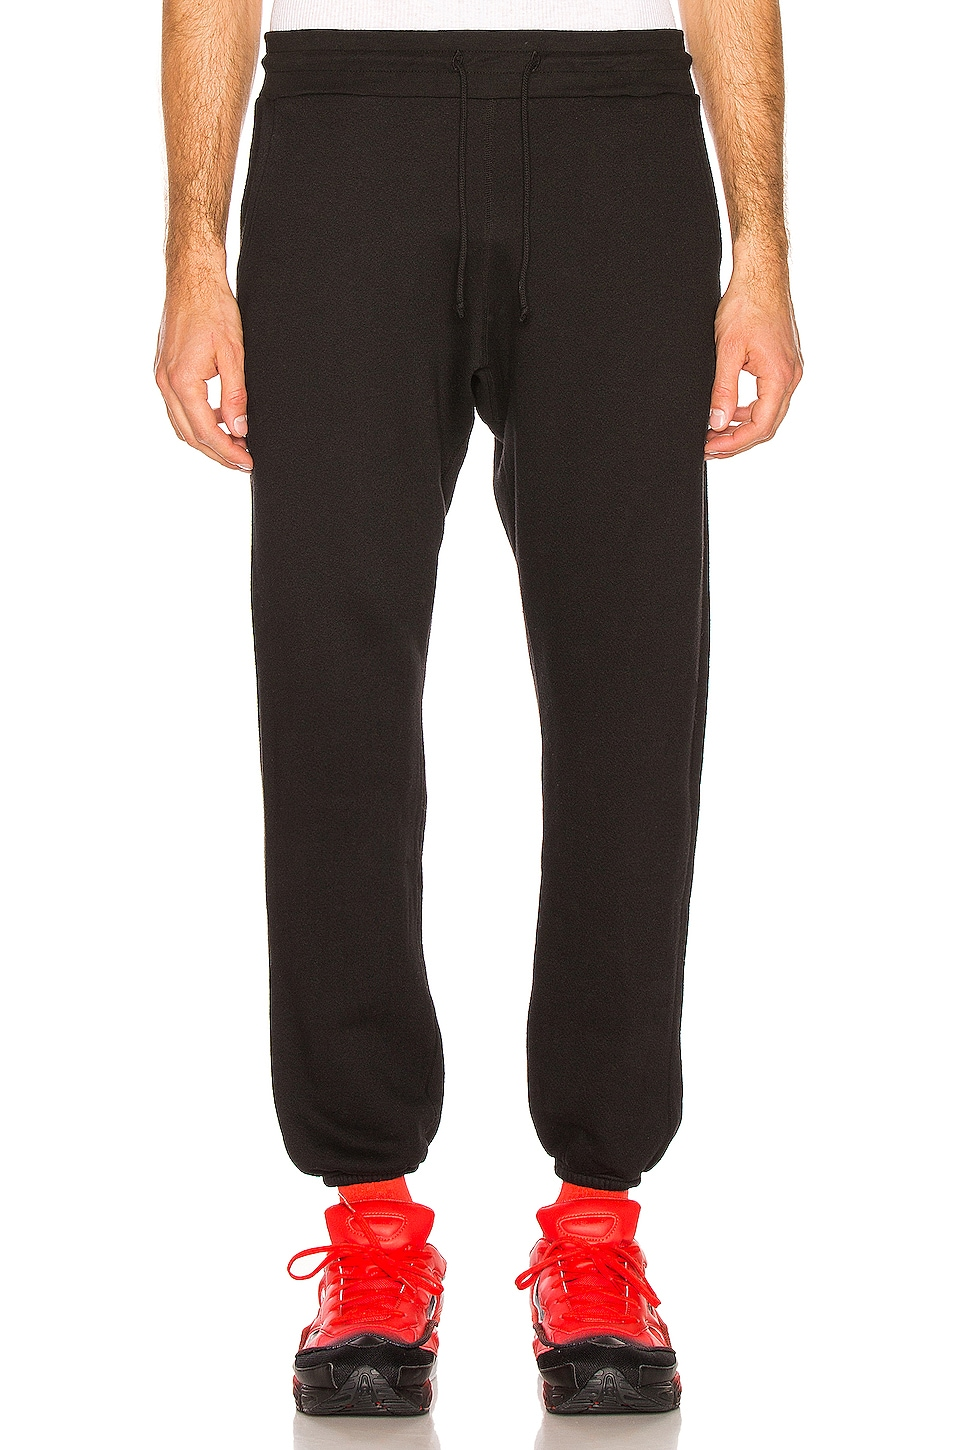 JOHN ELLIOTT Vintage Fleece Sweatpants en Vintage Black